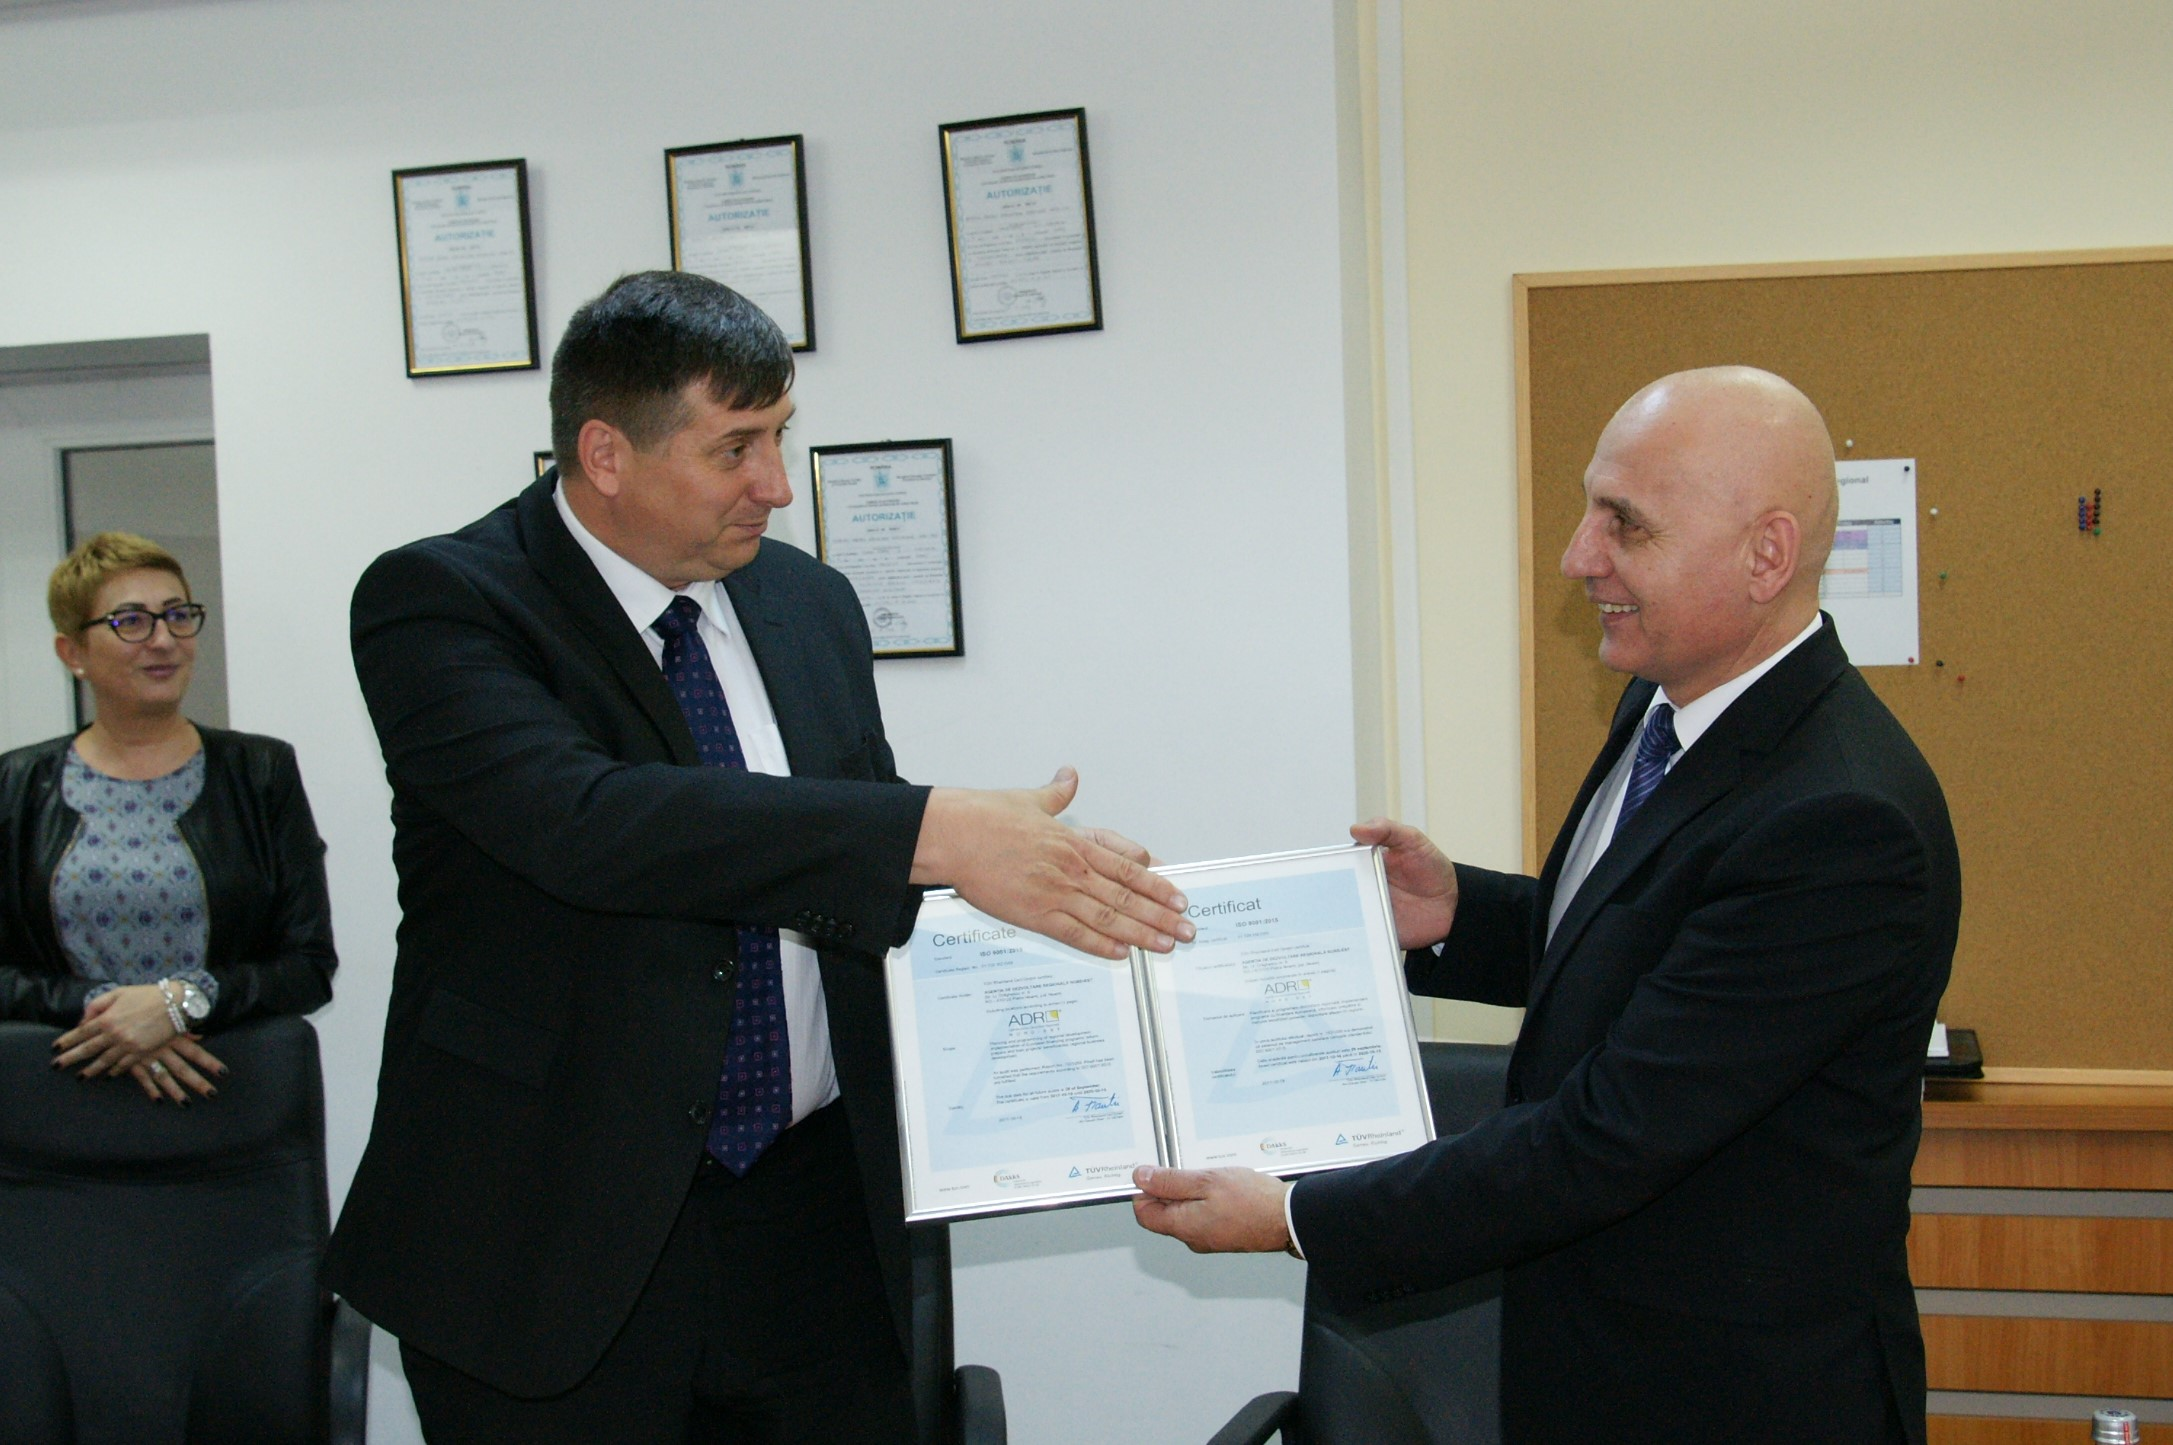 ADR Nord-Est obtains the ISO 9001: 2015 Certification Standard in Quality Management